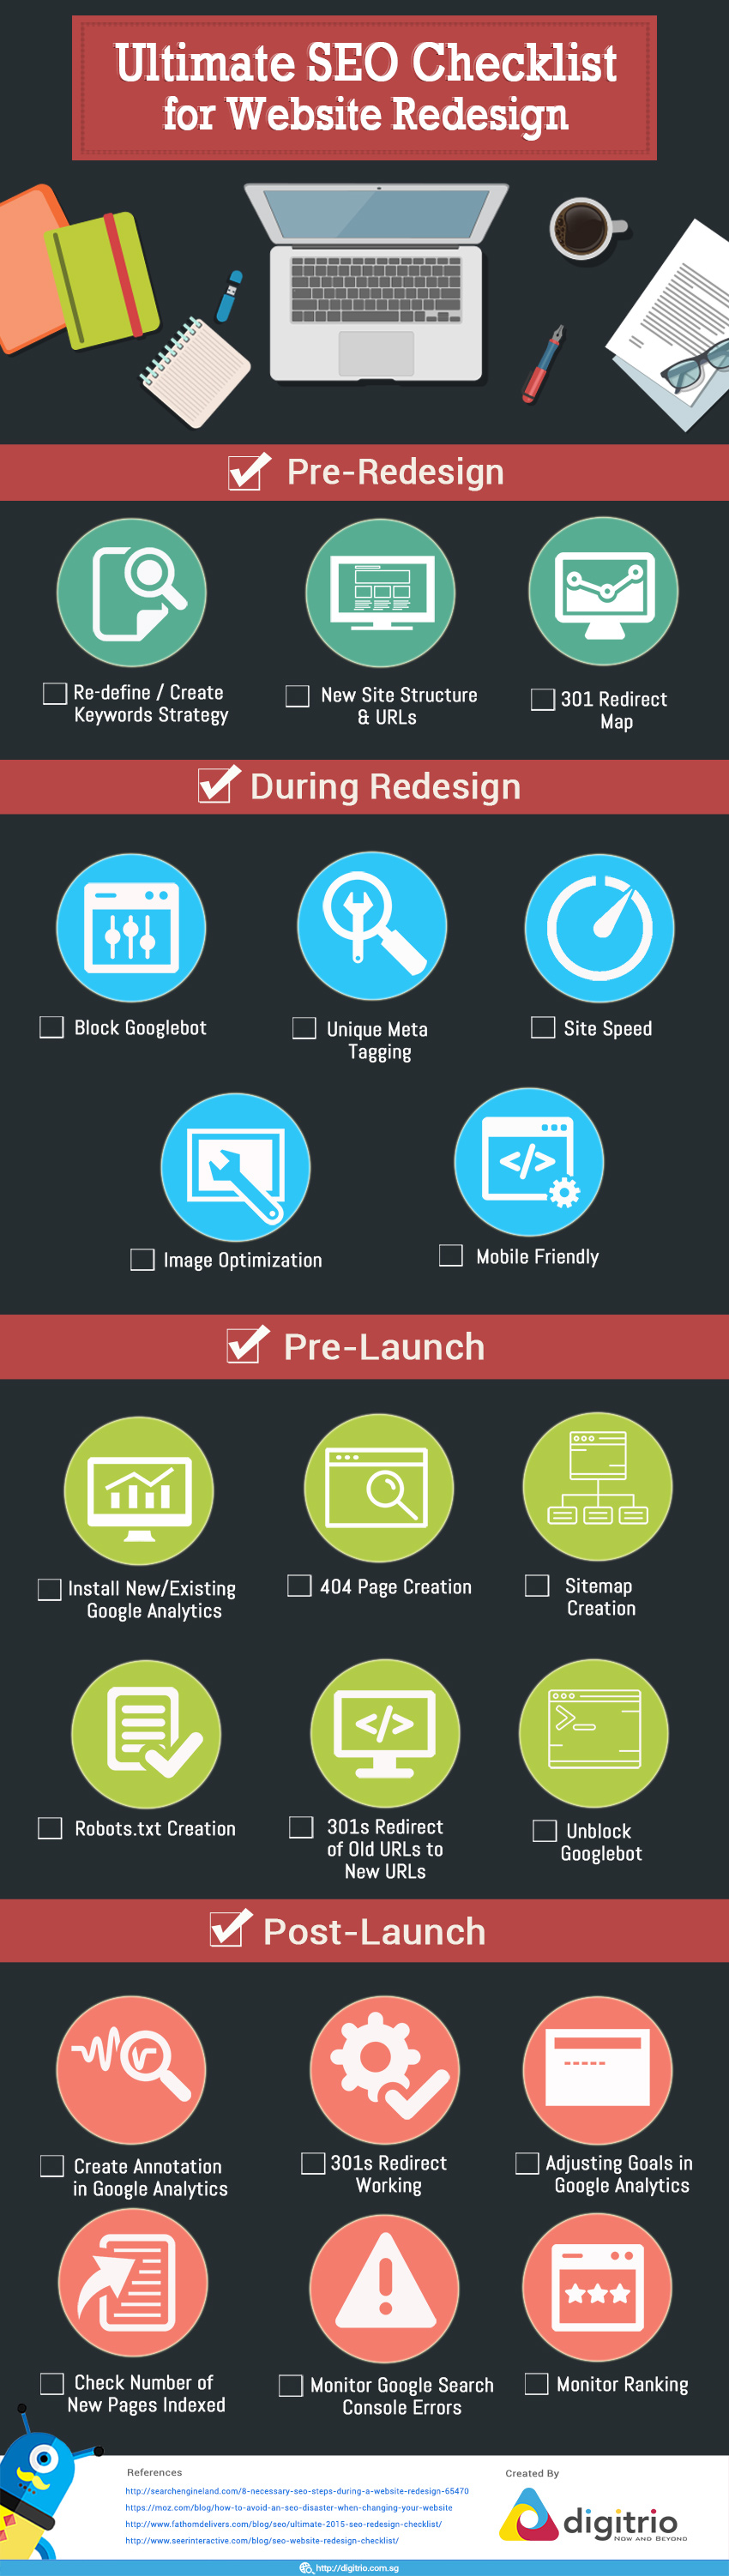 The Ultimate SEO Checklist for Website Redesign infographic